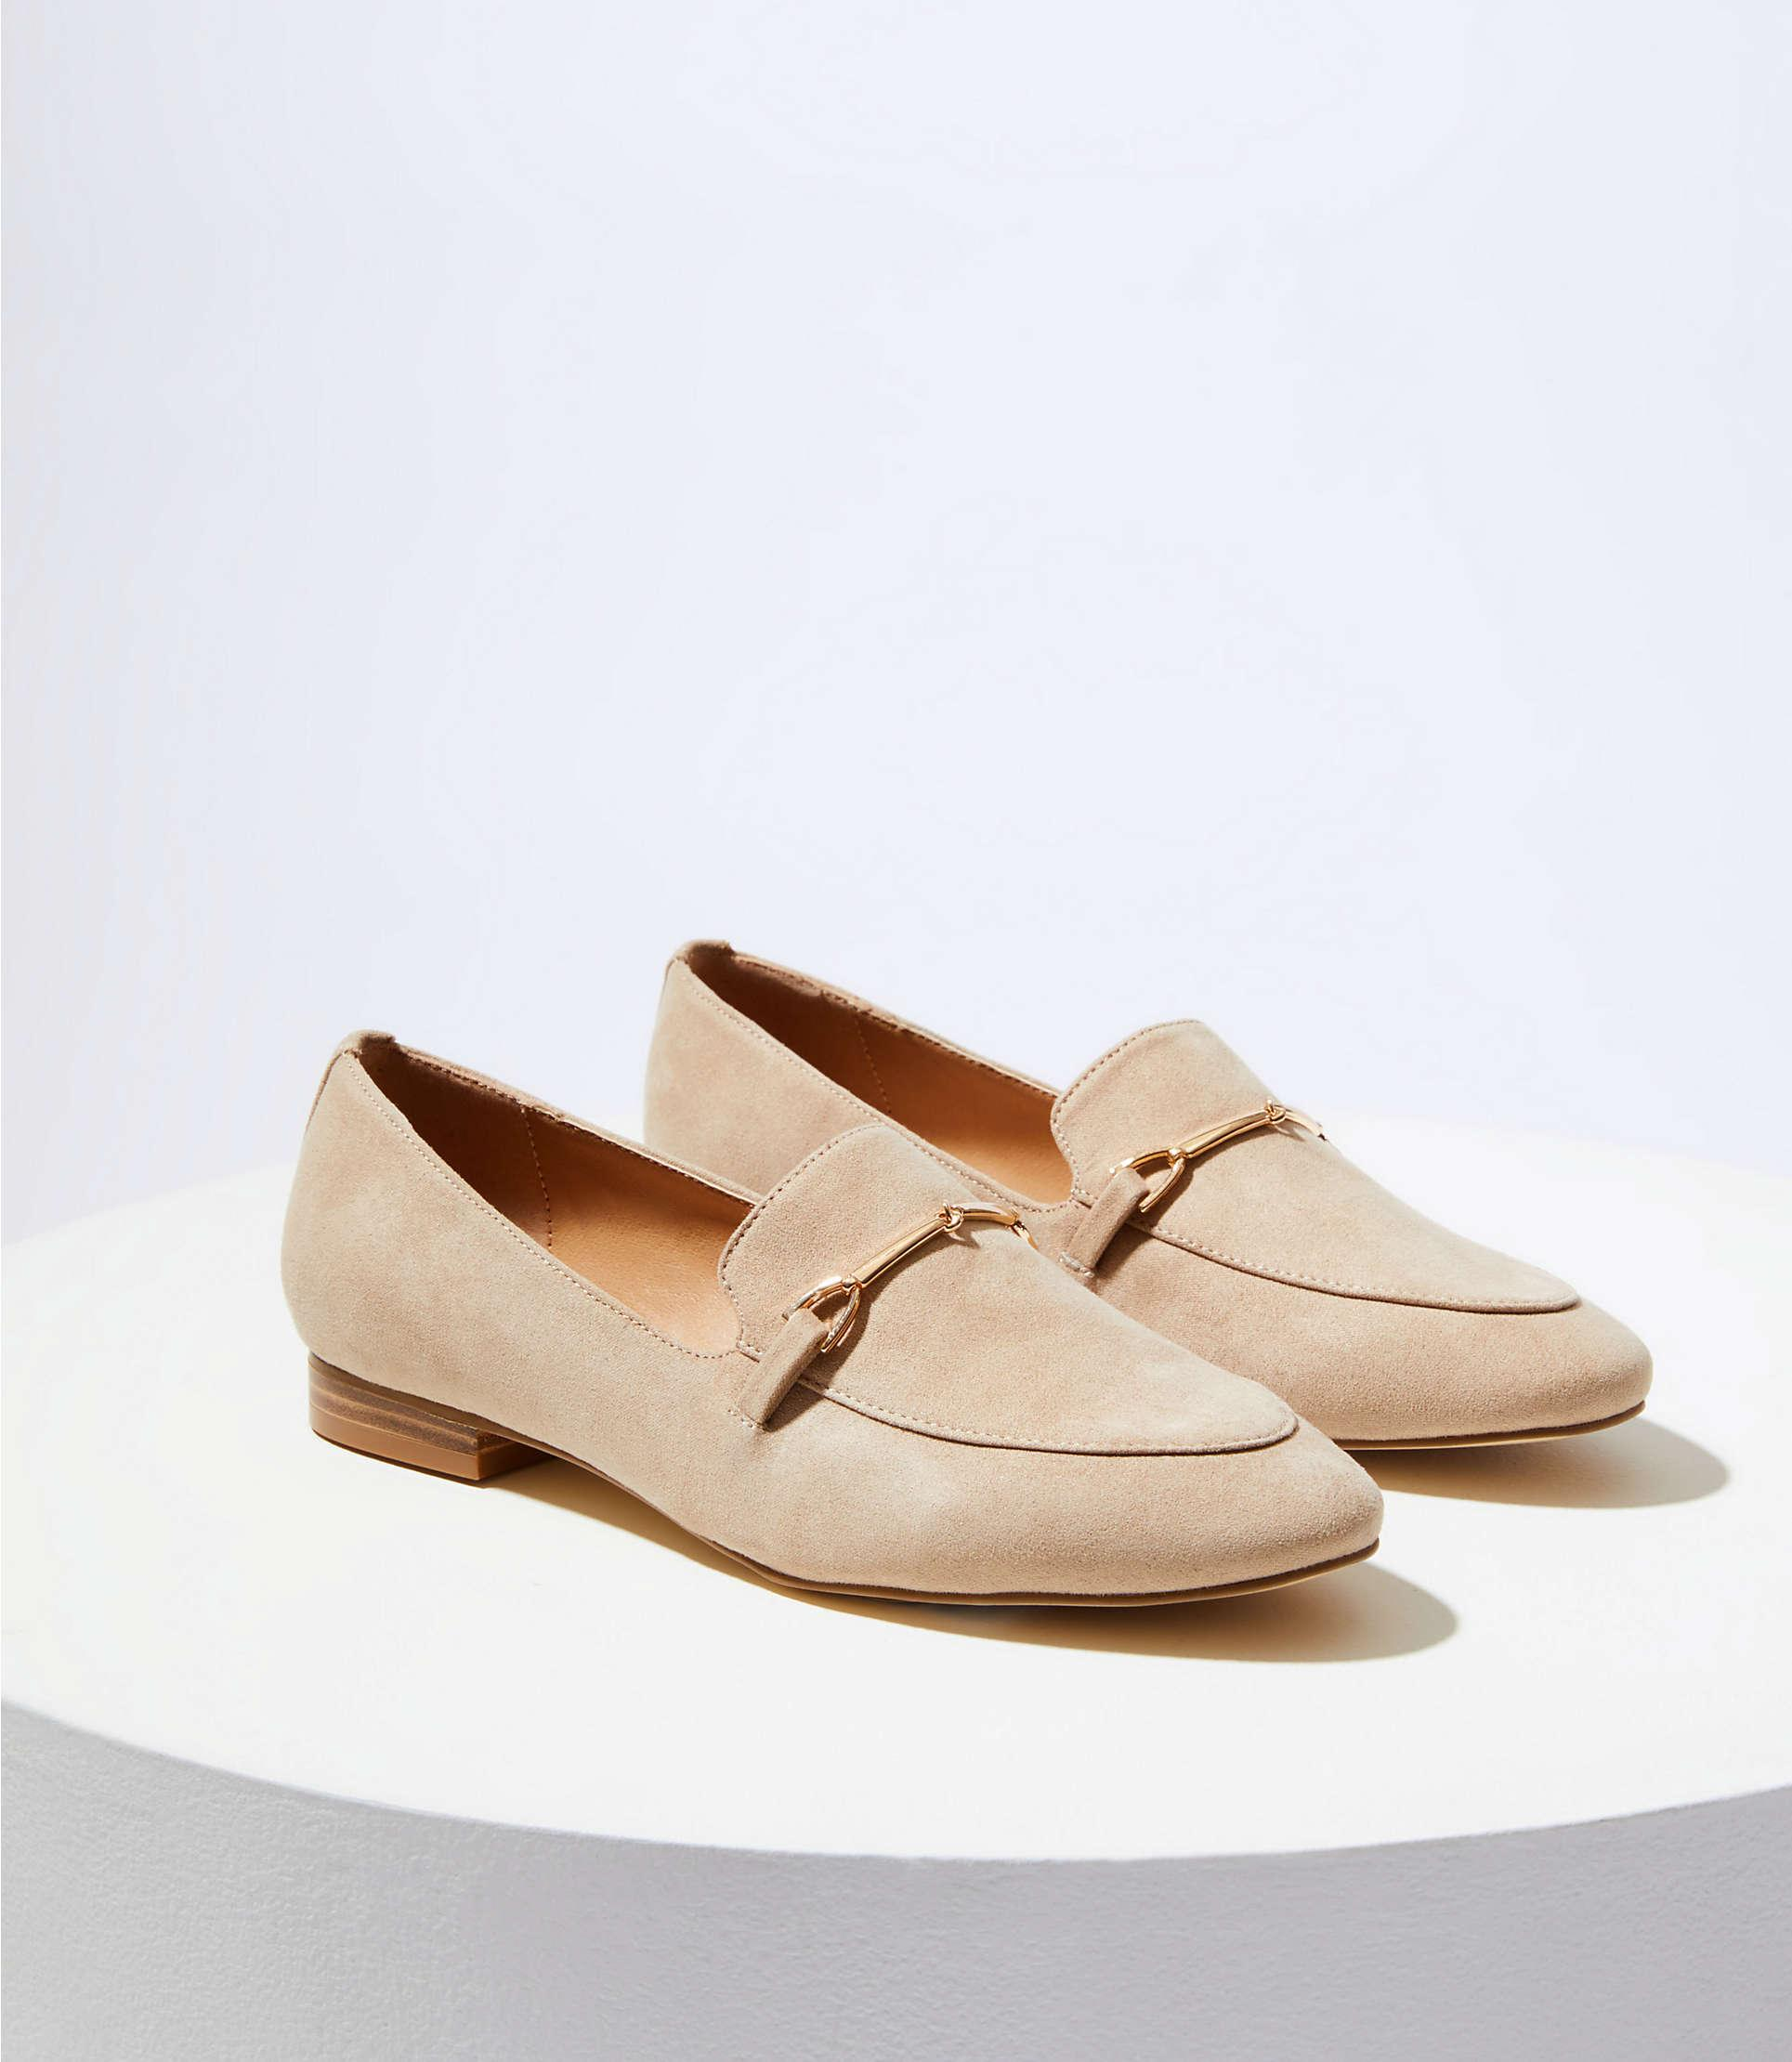 663e087d8ba8 Lyst - LOFT Modern Loafers in Natural